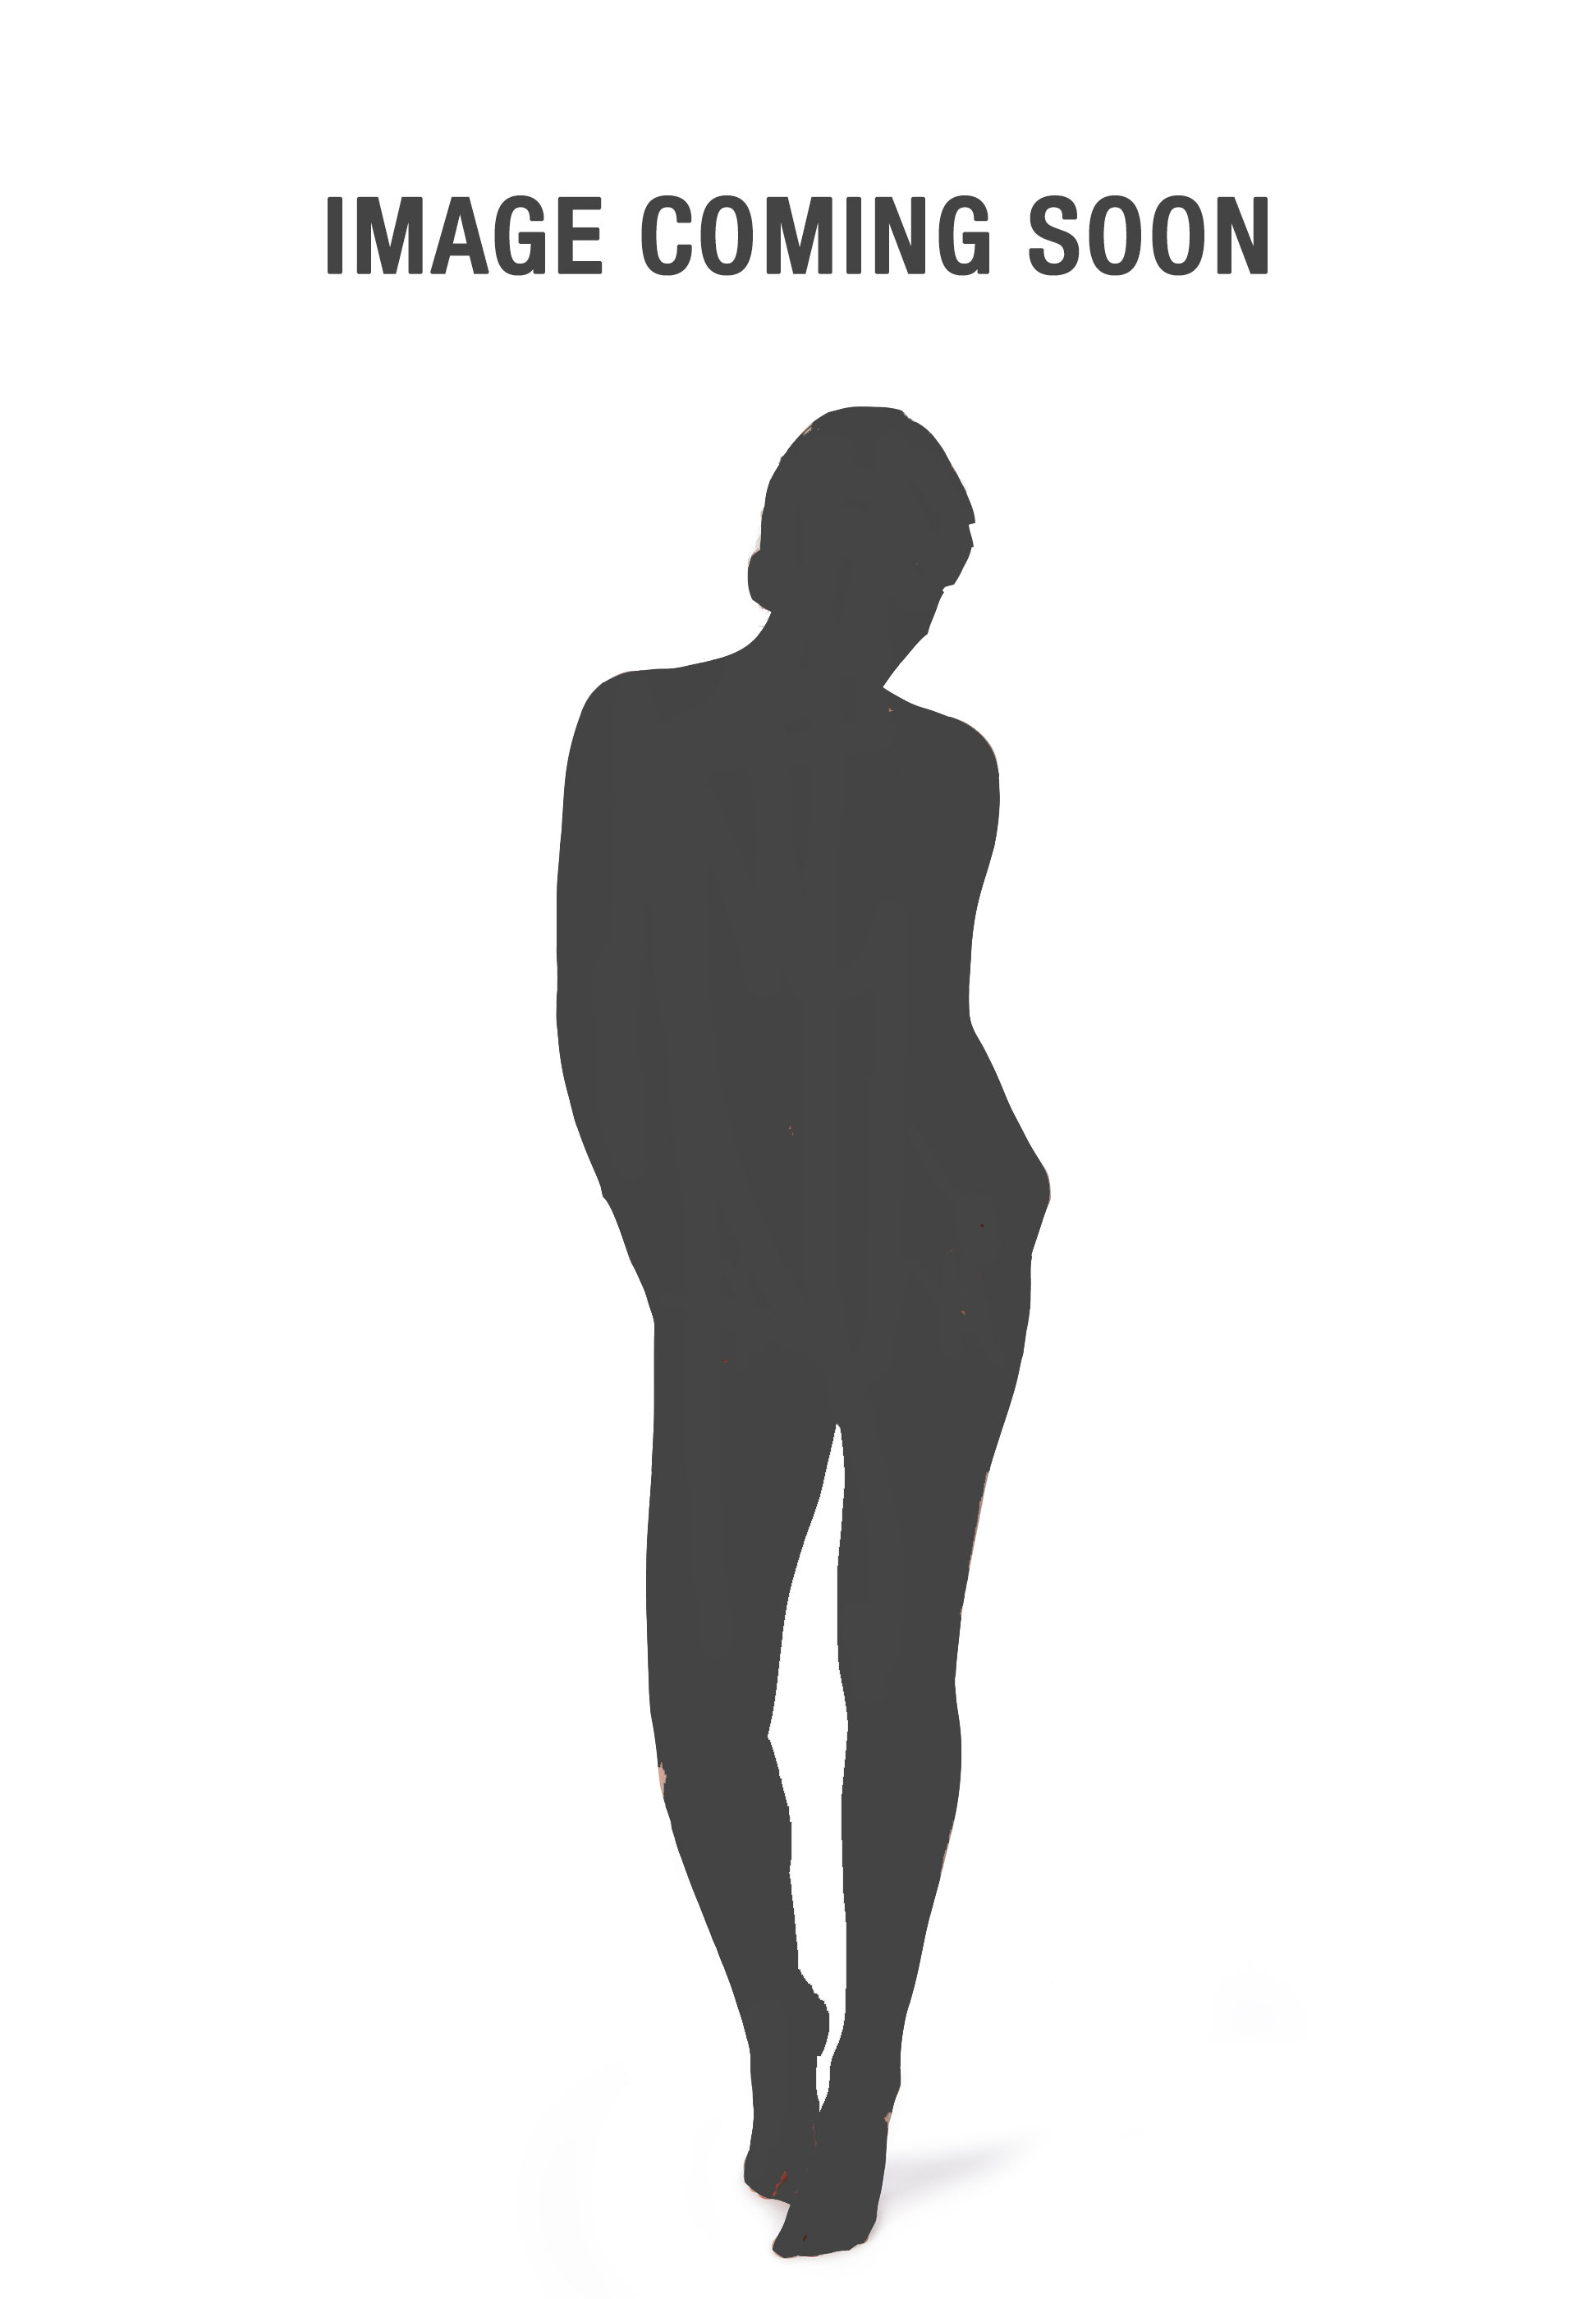 HUBER_Basic_W_24hourswomenSleep_shorts_018924_014752_010.jpg